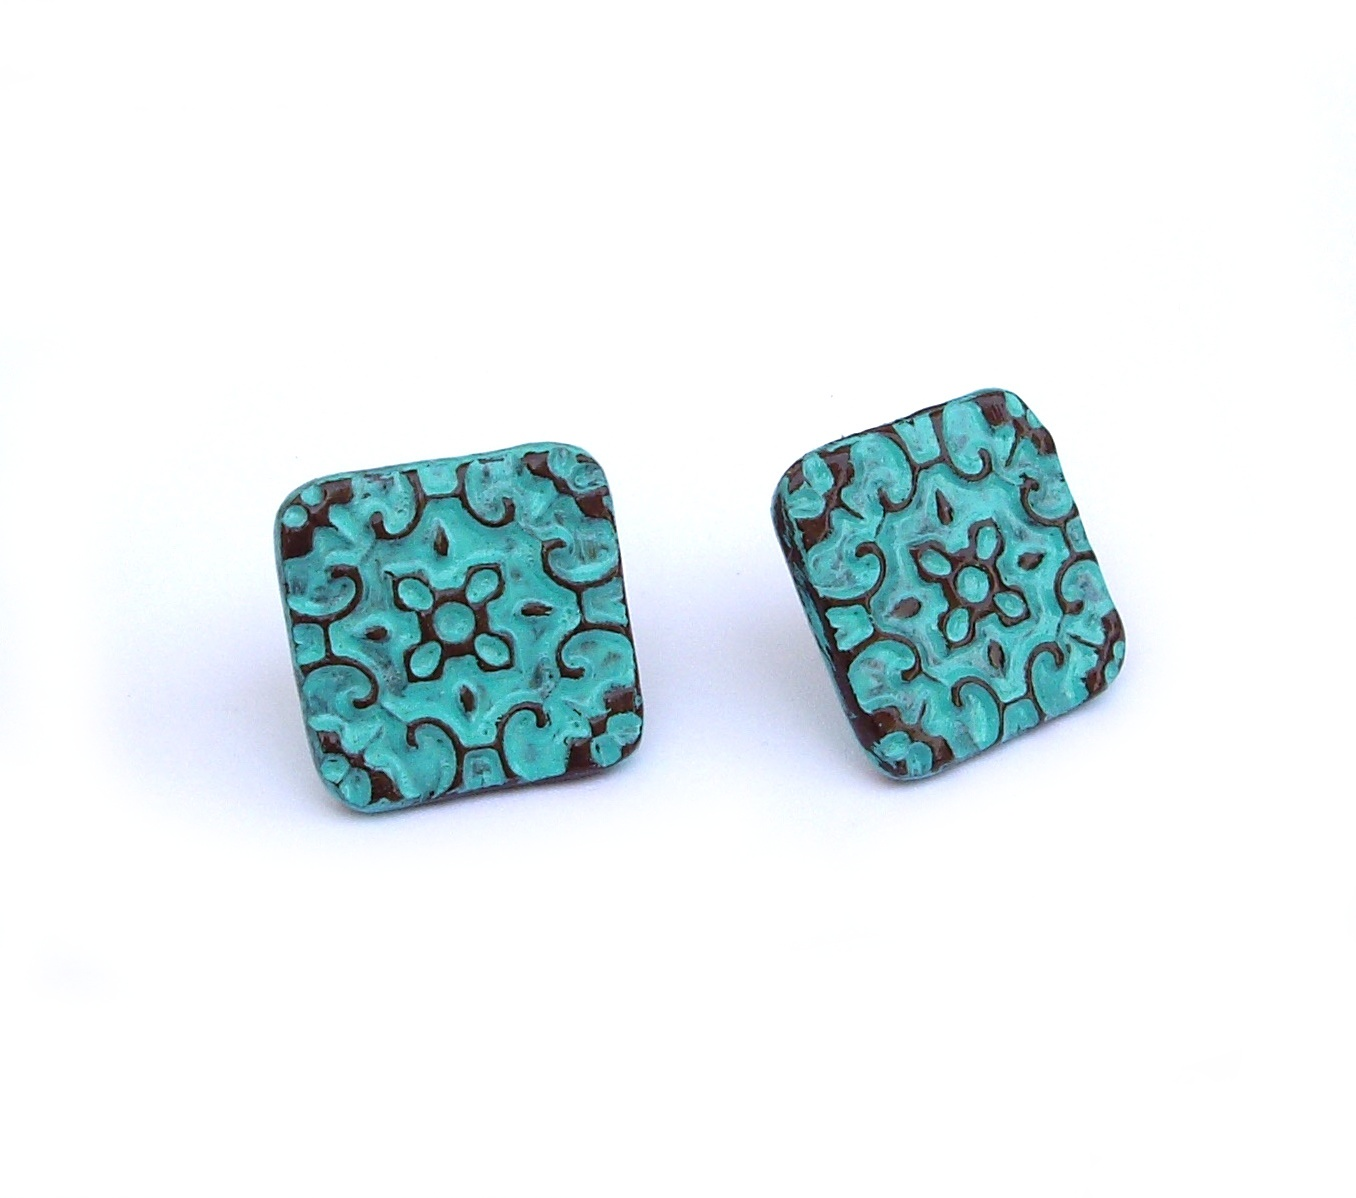 JP with love Jewelry And Hair Accessories Blog: Teal